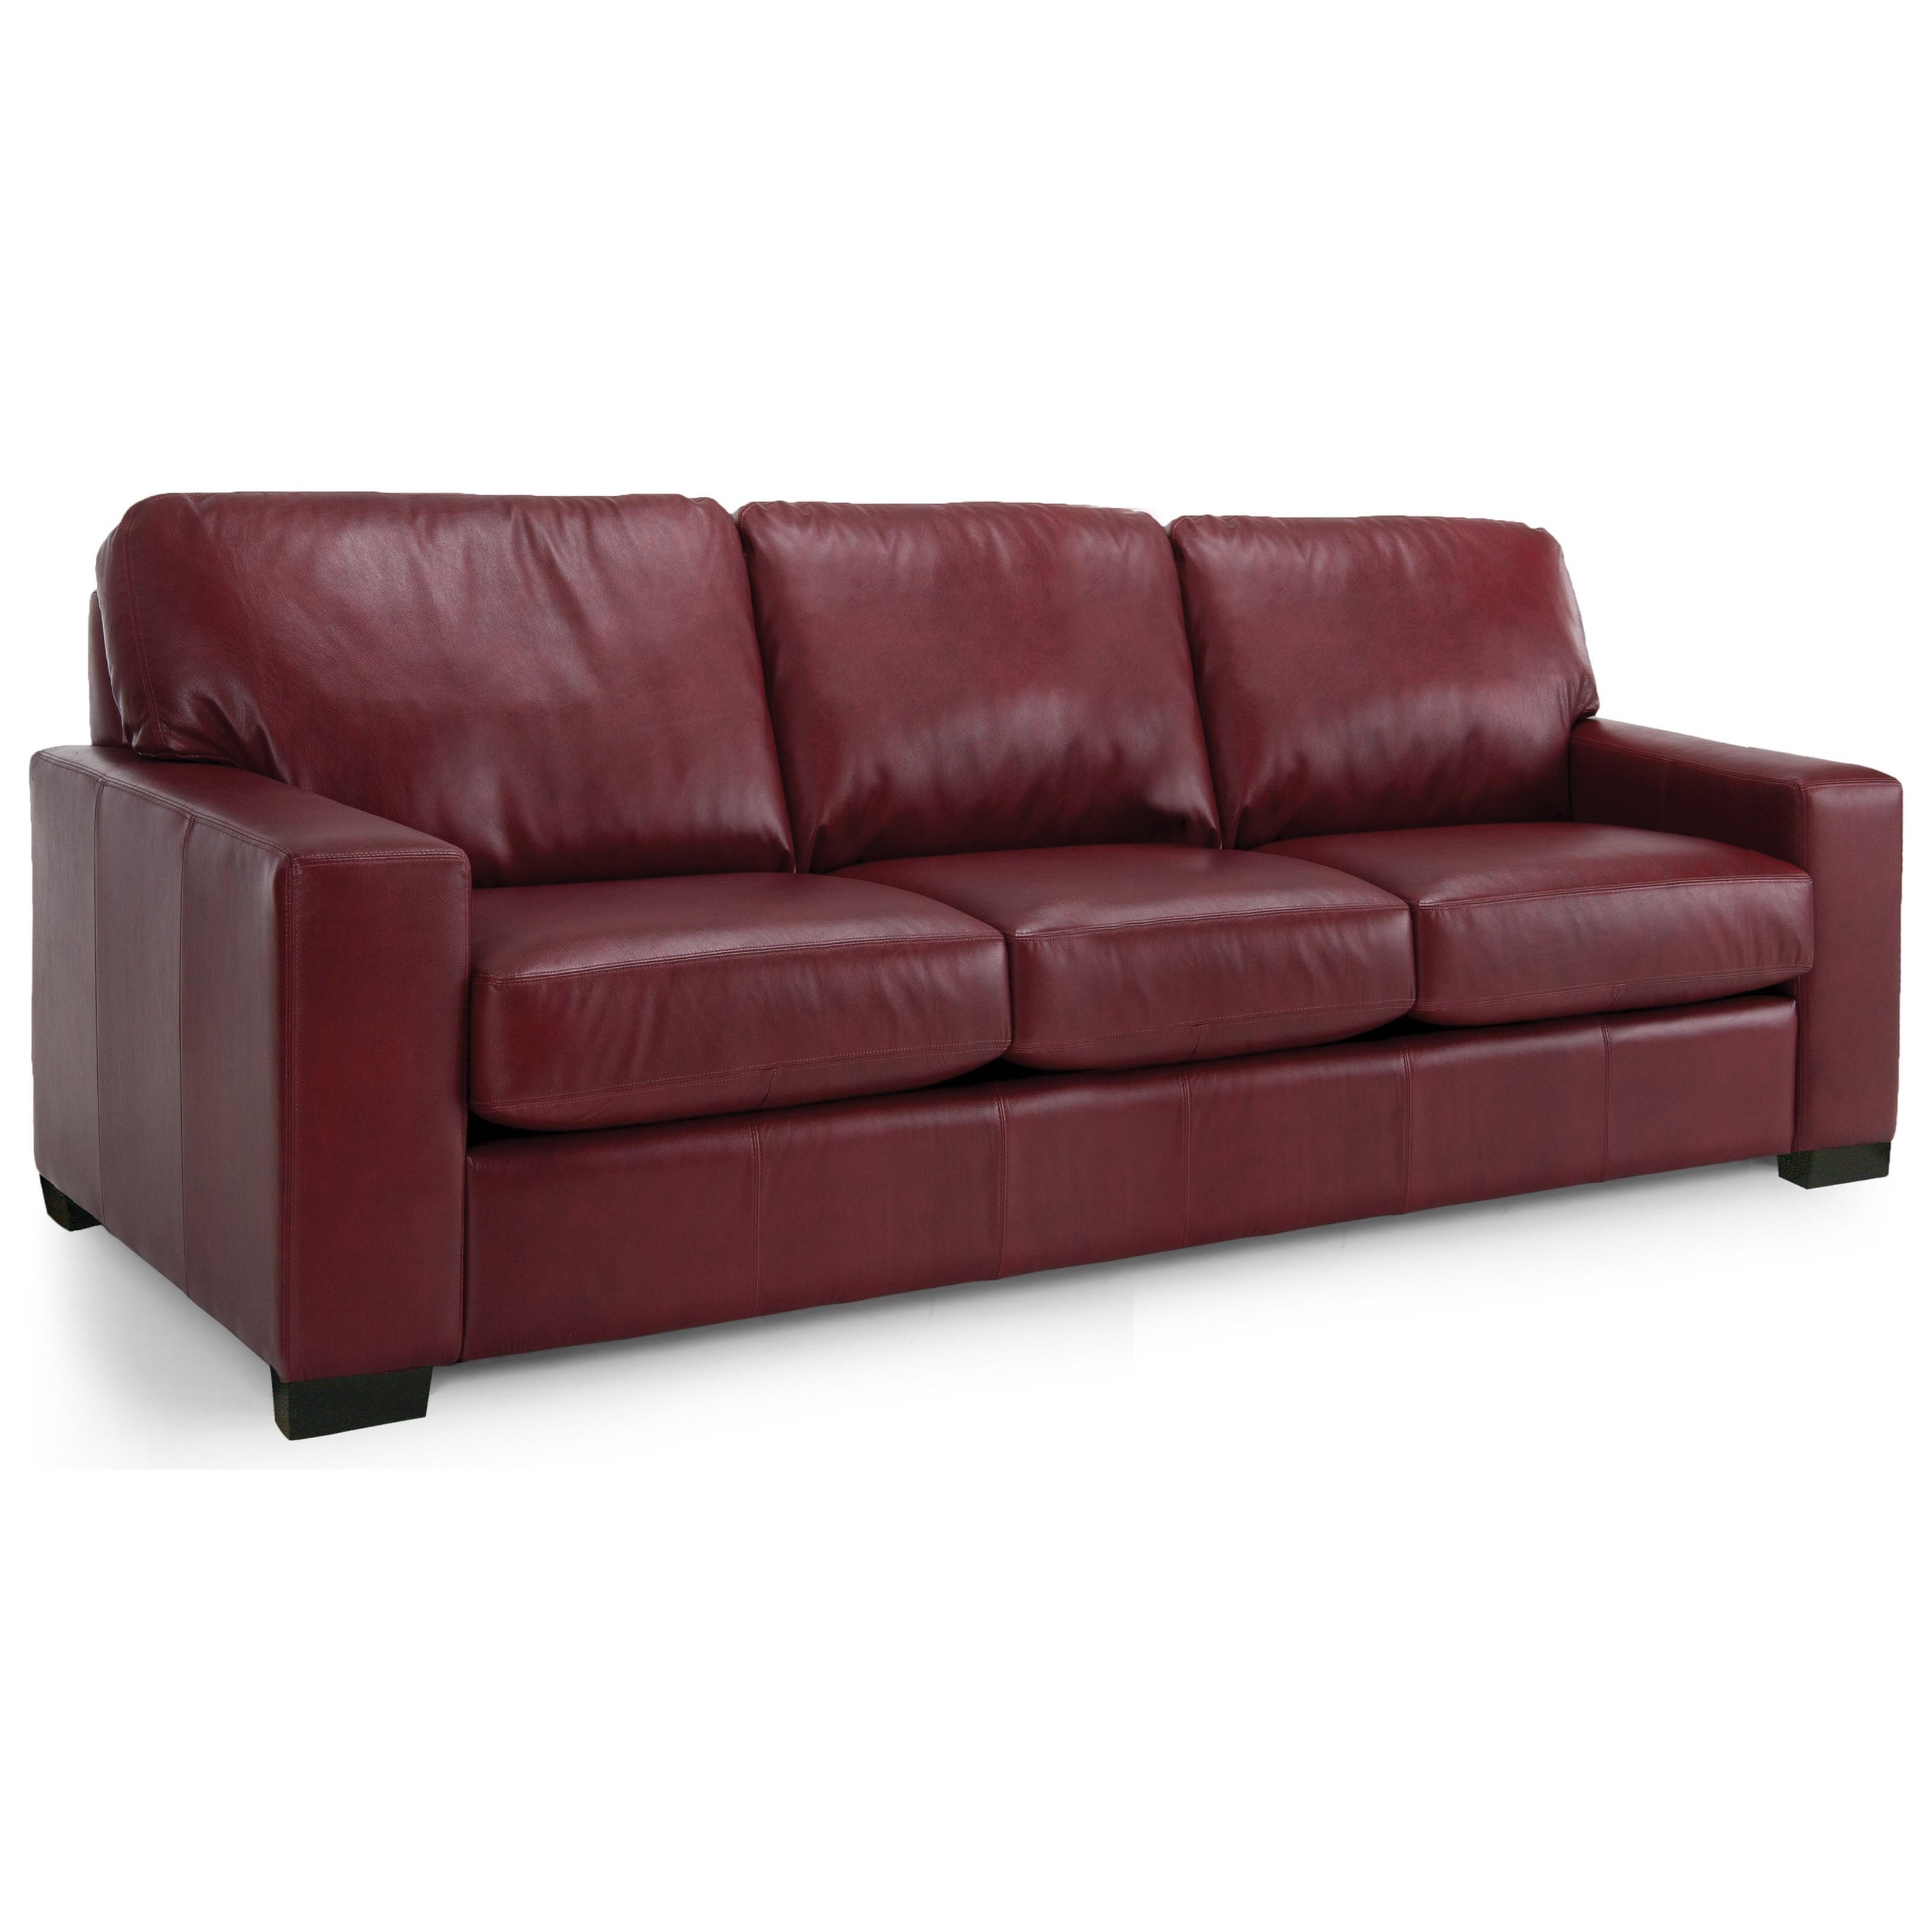 Alessandra Connections Sofa by Decor-Rest at Rooms for Less